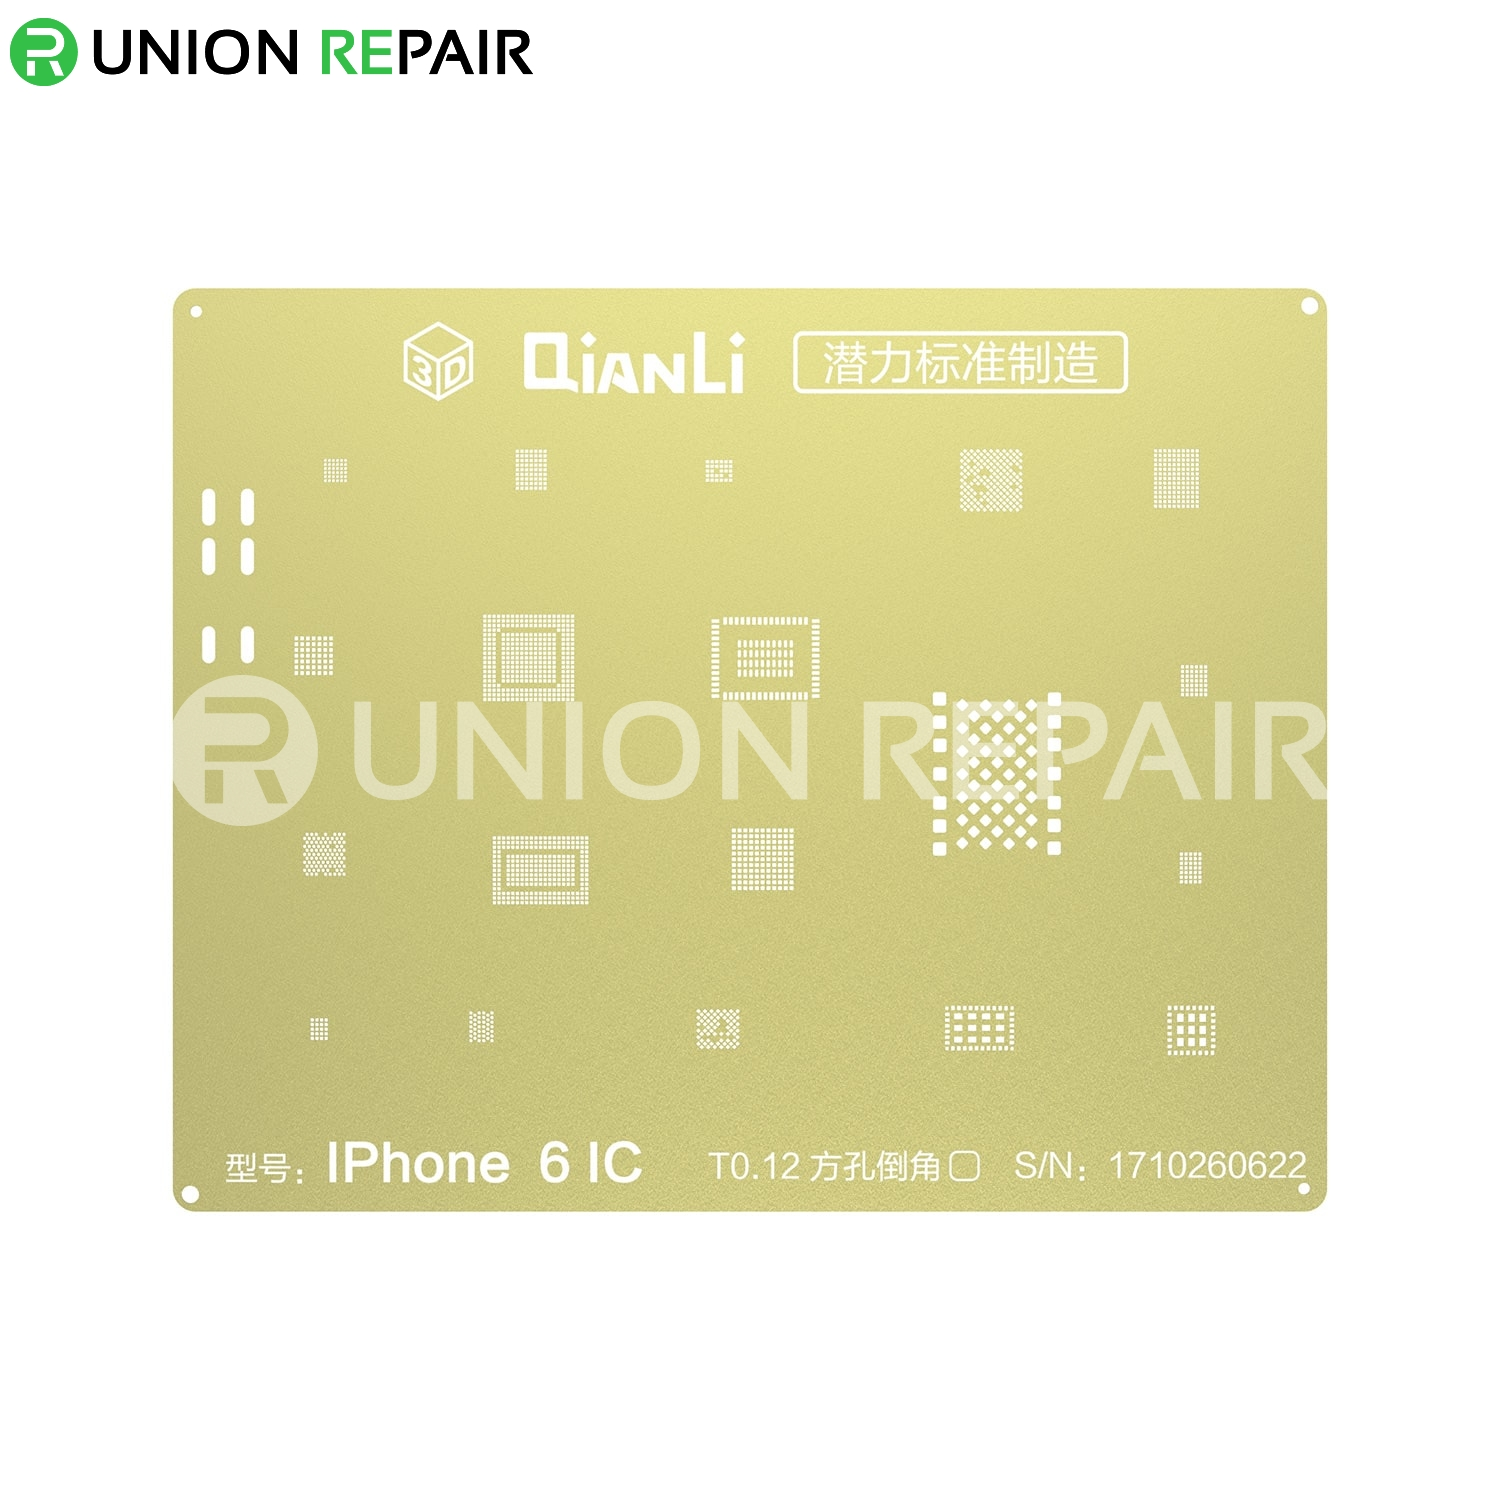 QianLi 3D BGA Reball Gold Stencil for iPhone 6-8P, fig. 1